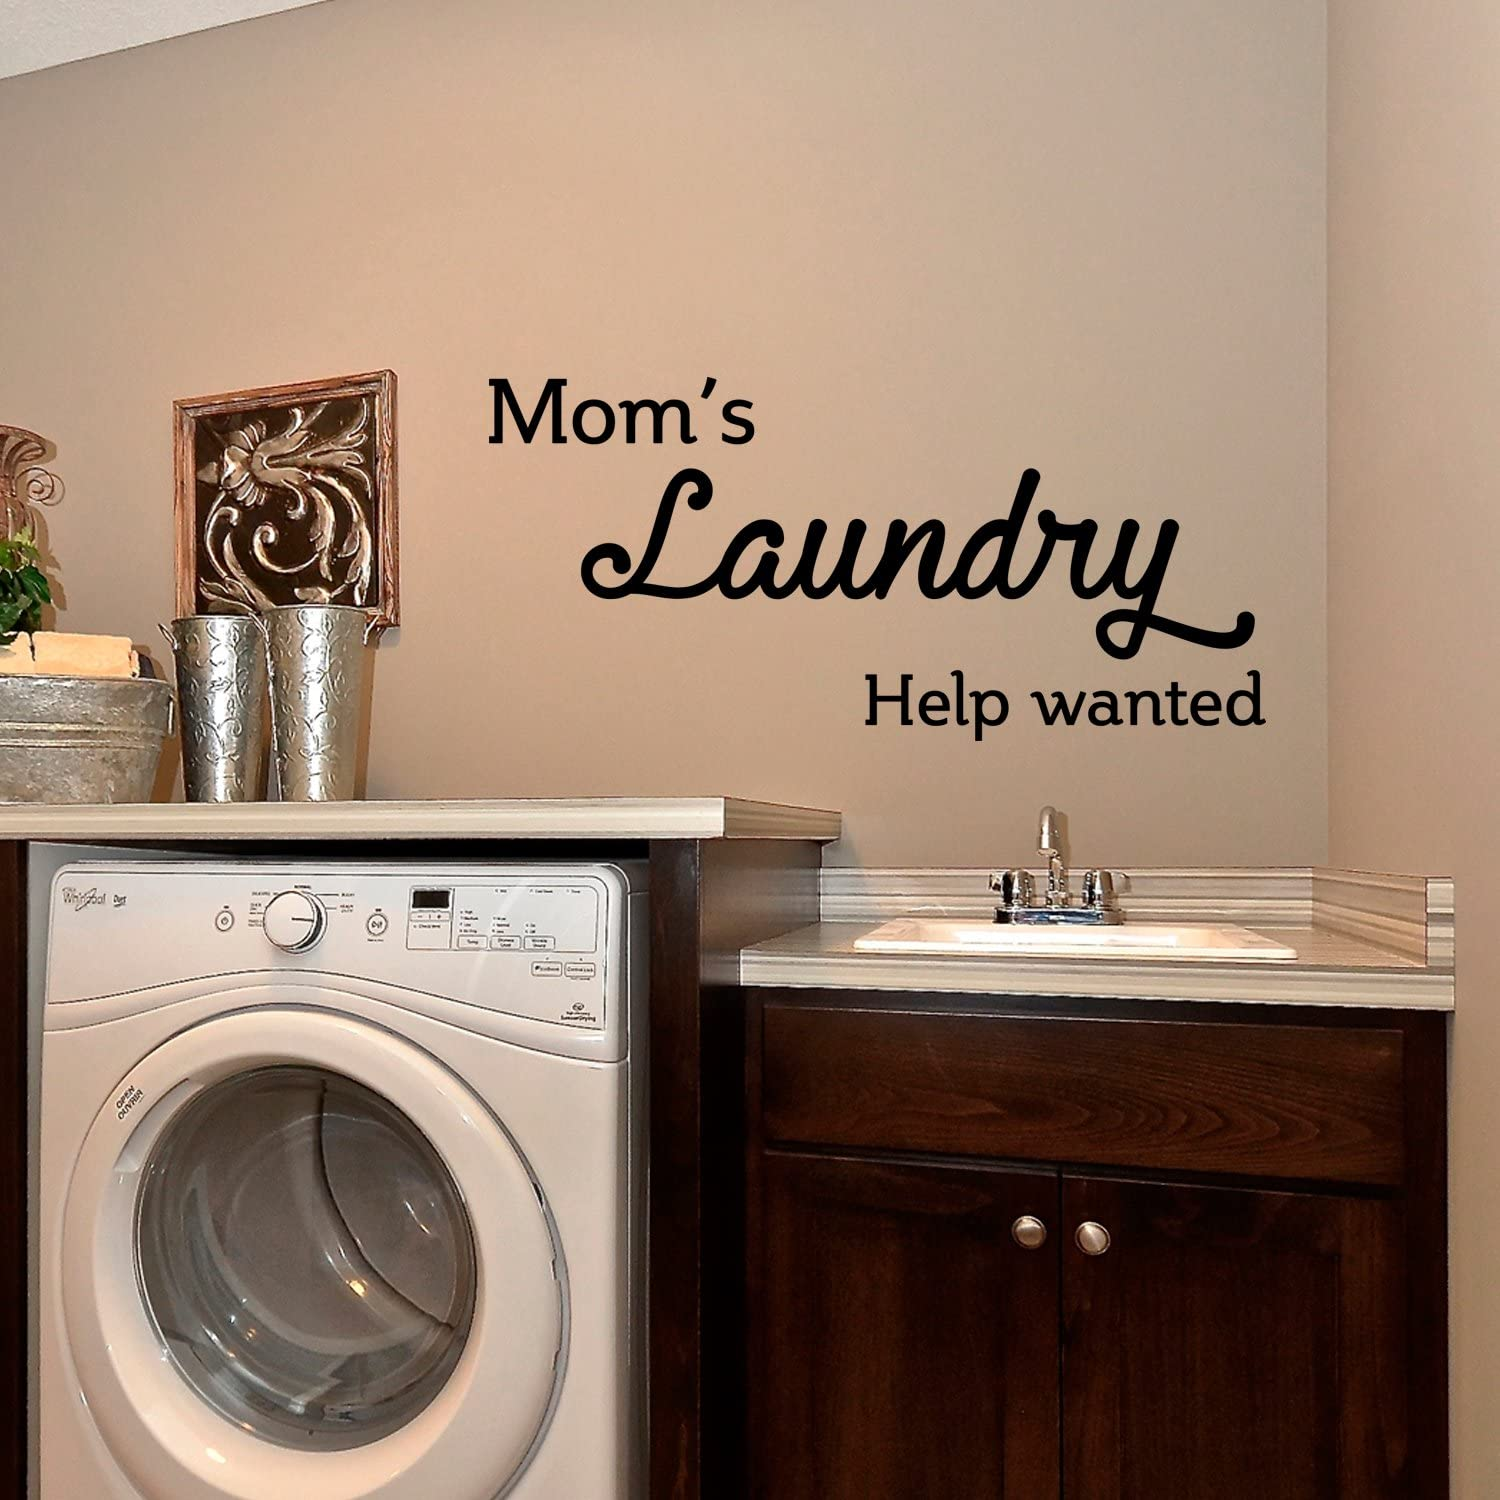 """Vinyl Wall Art Decal - Mom's Laundry Help Wanted - 15"""" x 32"""" - Funny Quotes Laundry Room Decoration - Waterproof Stencil Adhesive Design Stickers - Just for Fun Decorations"""